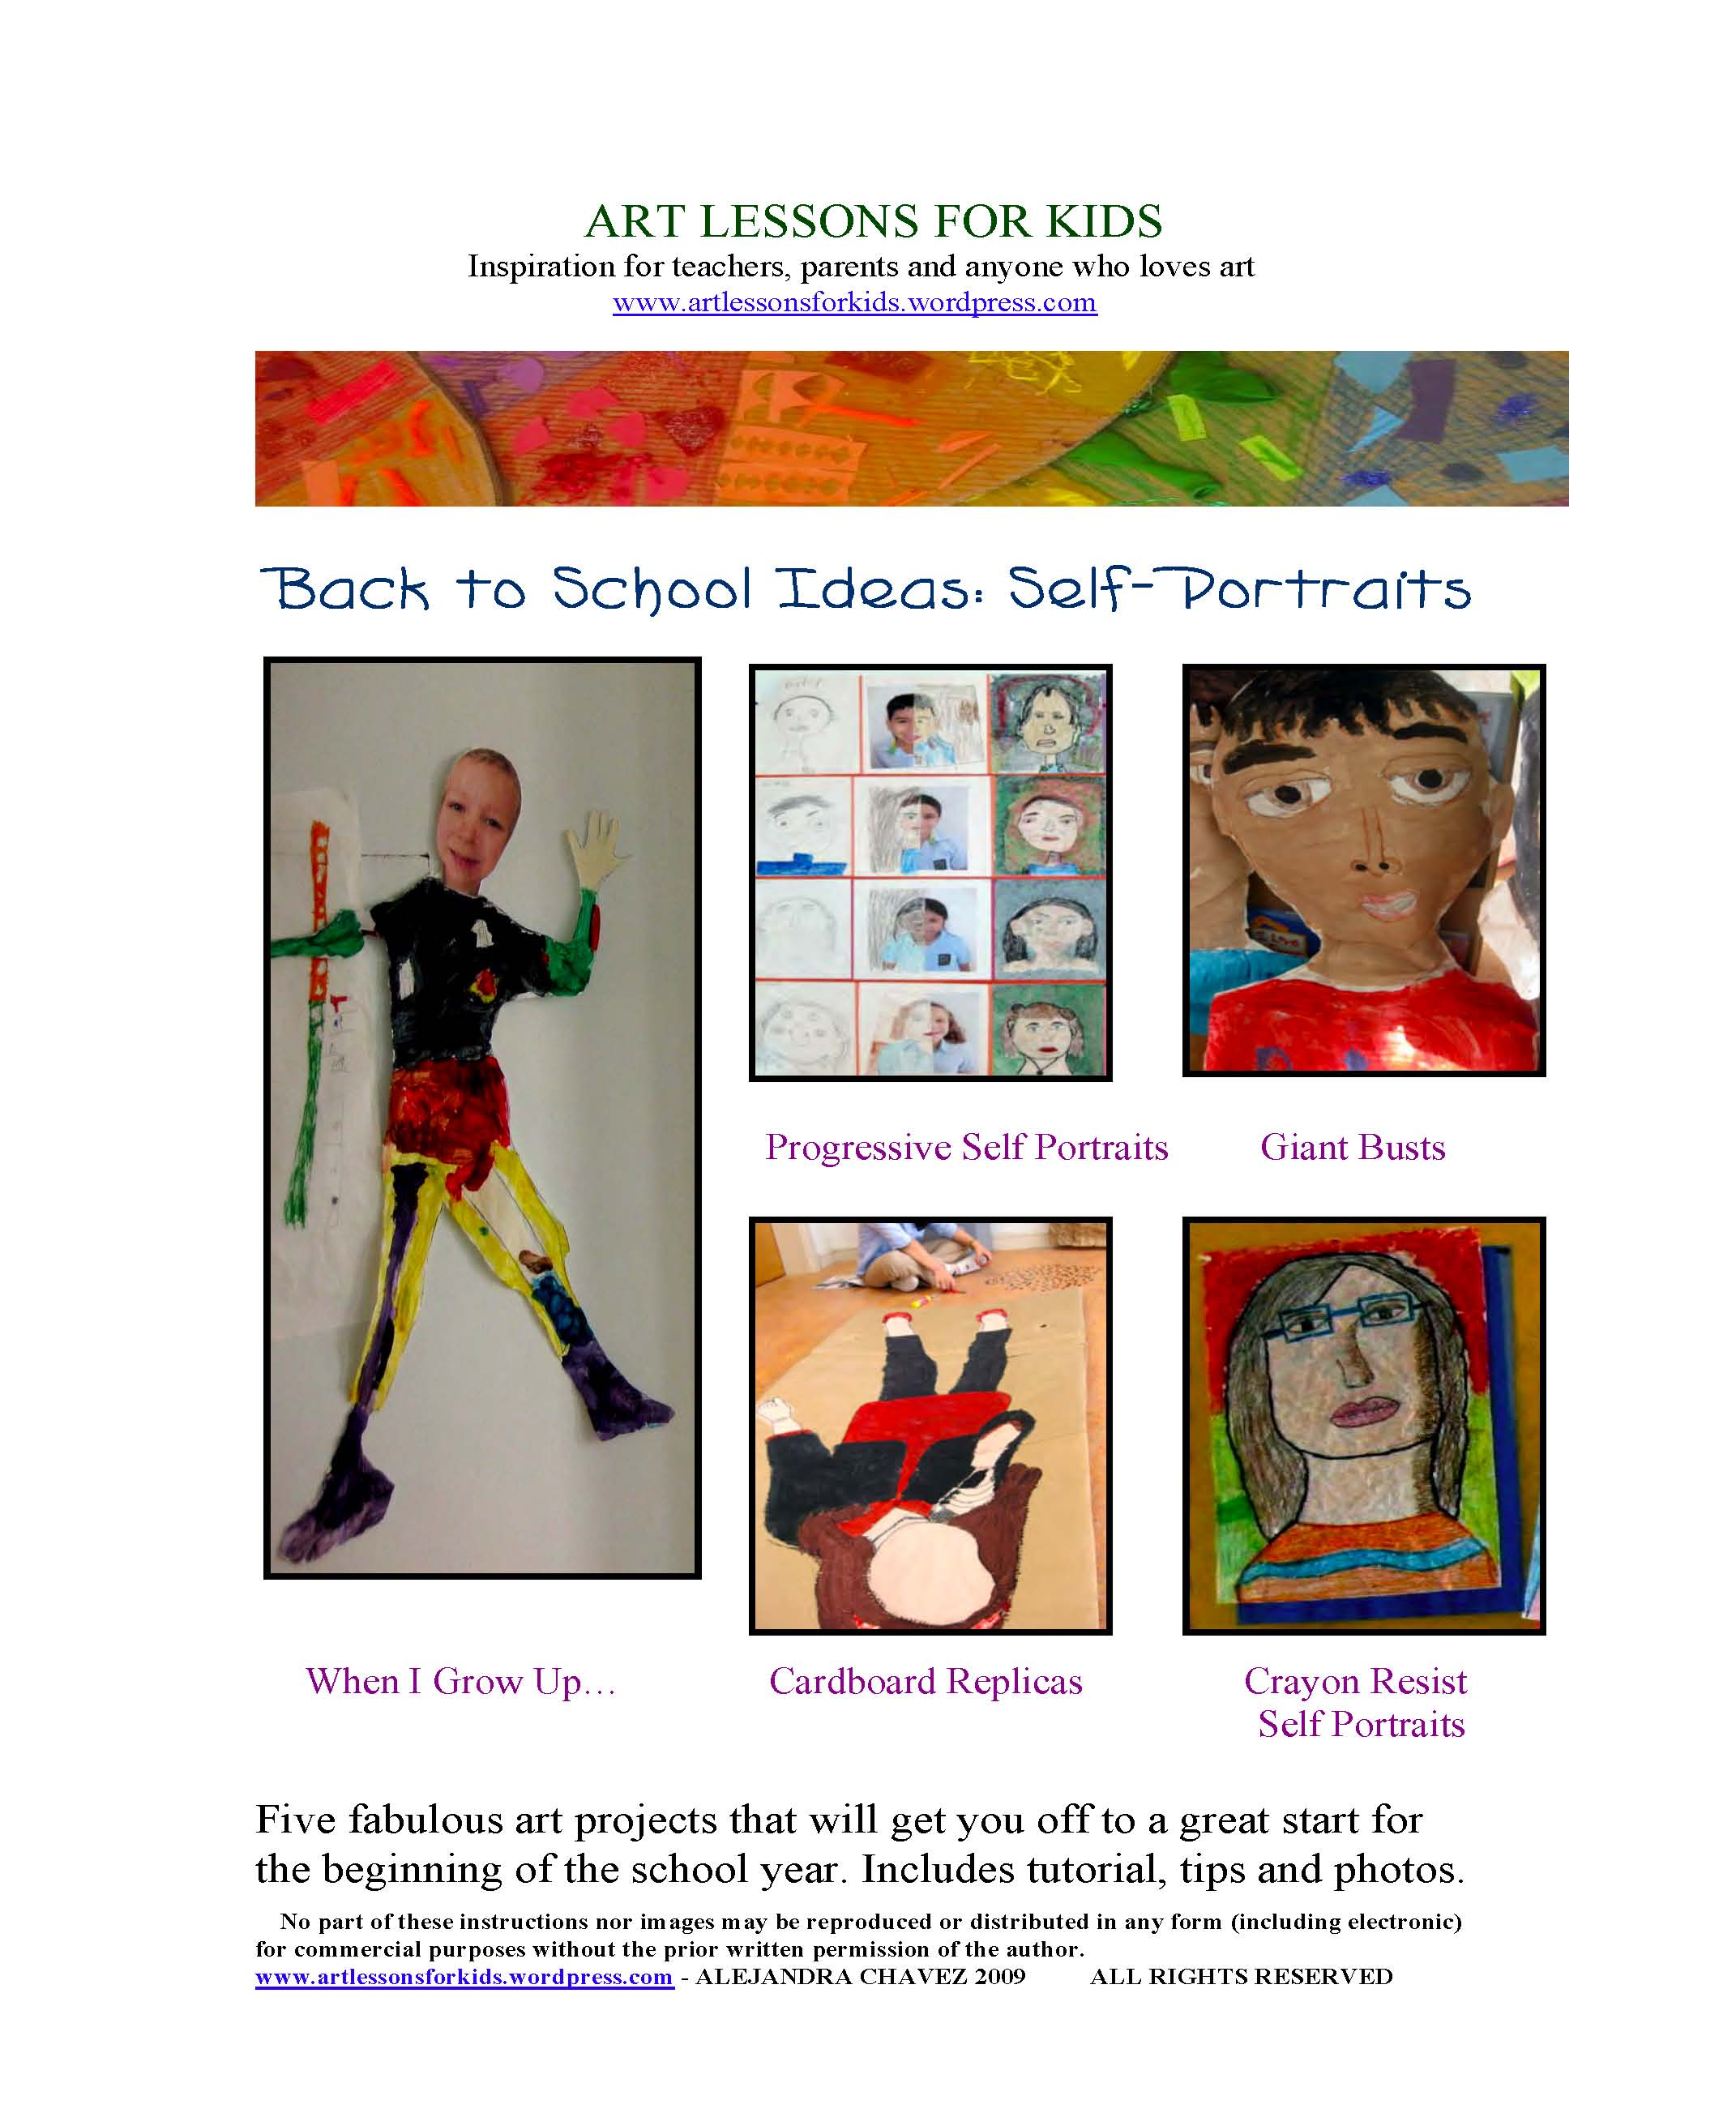 Back to school art ideas self portraits page 013